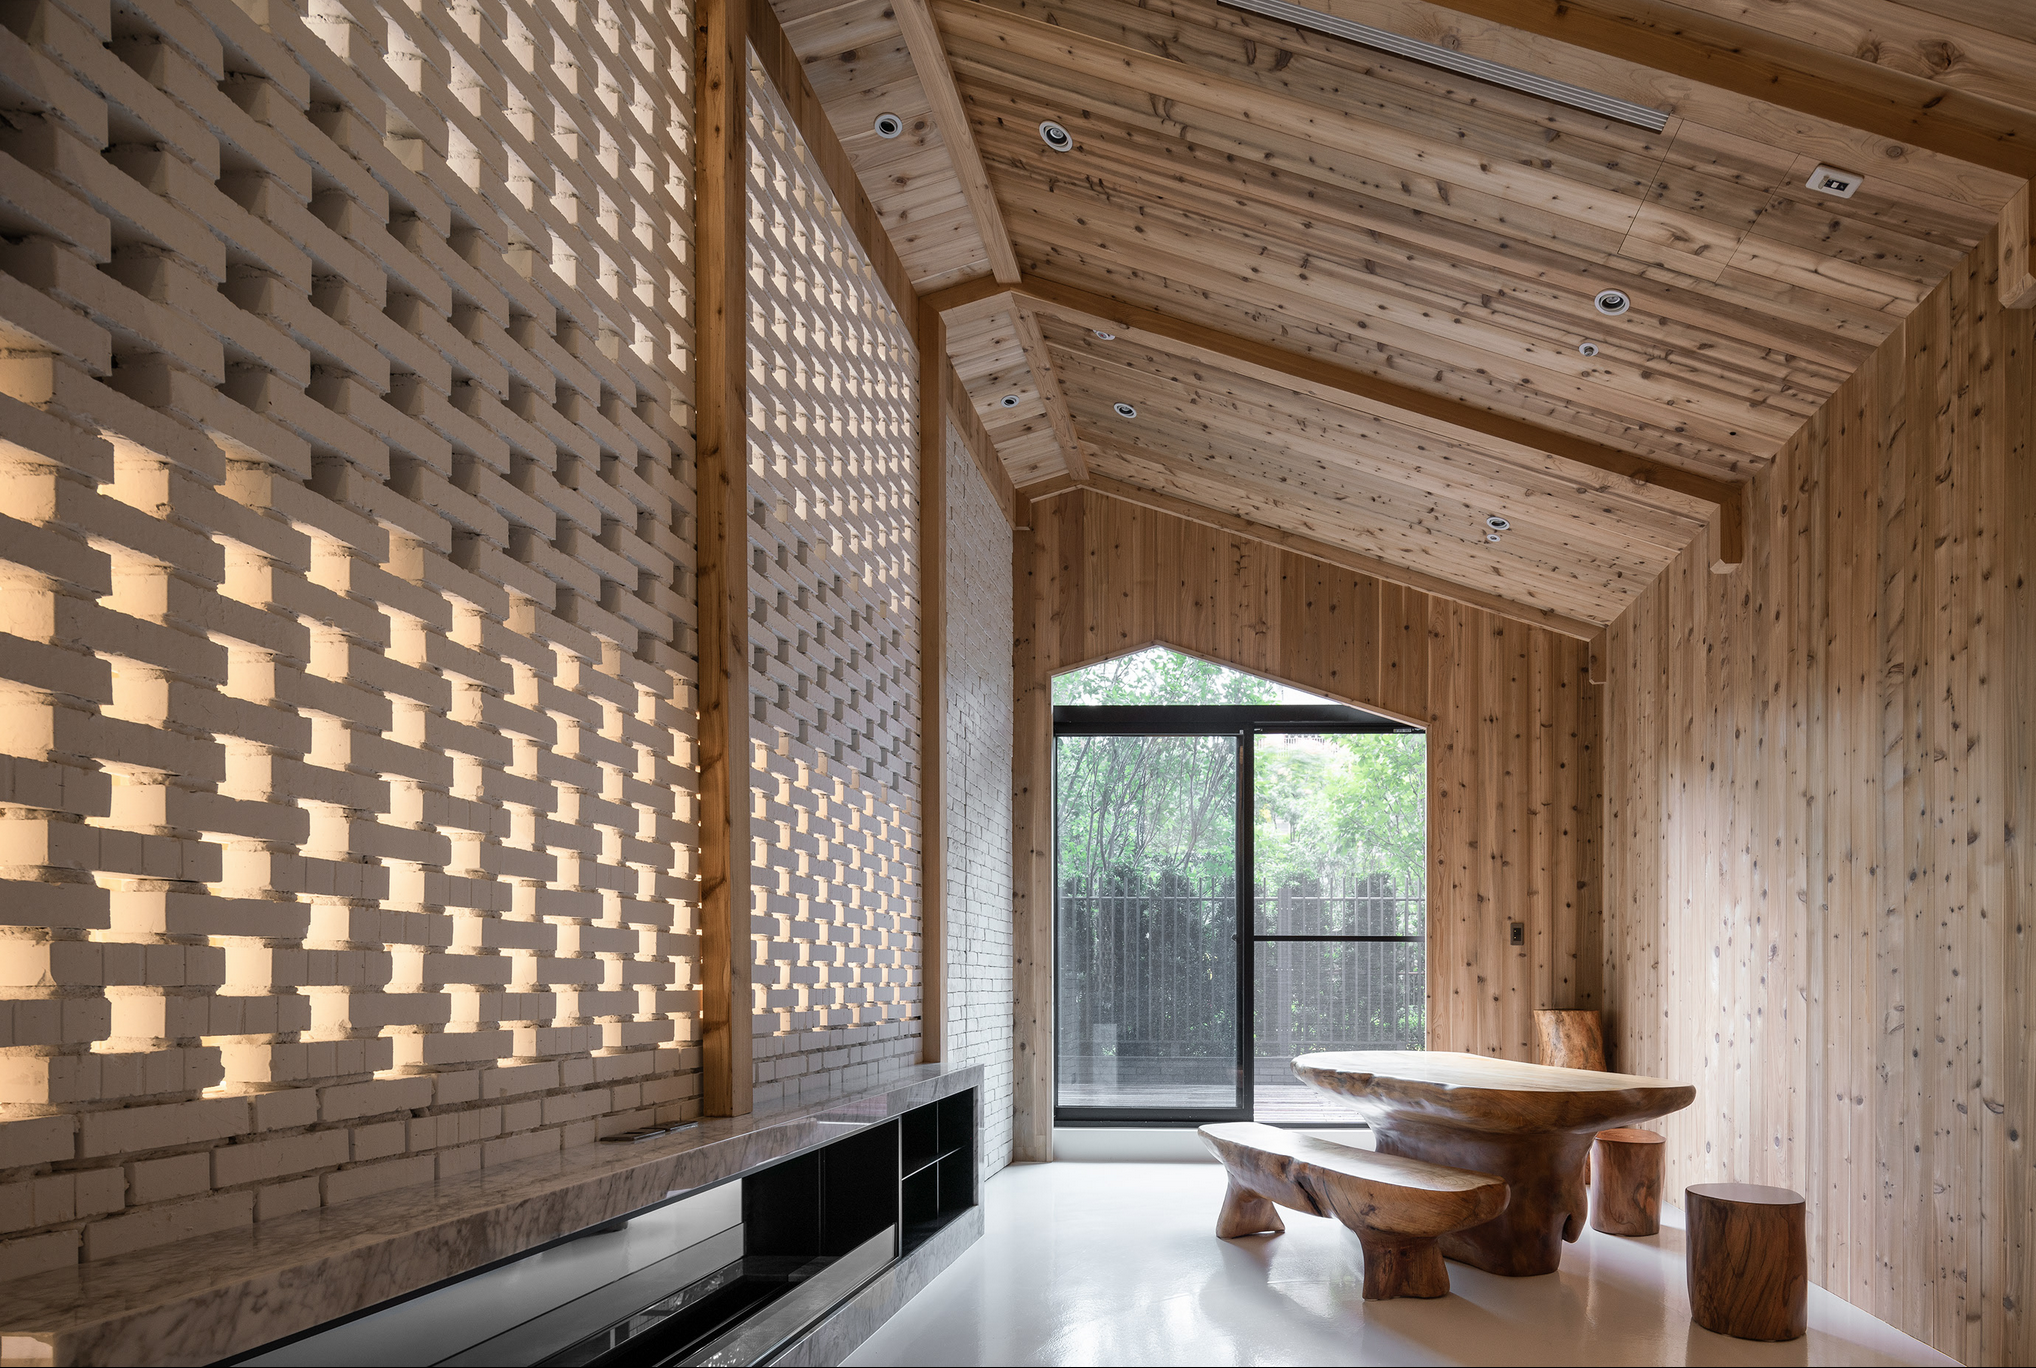 Beautiful space of wood and stone